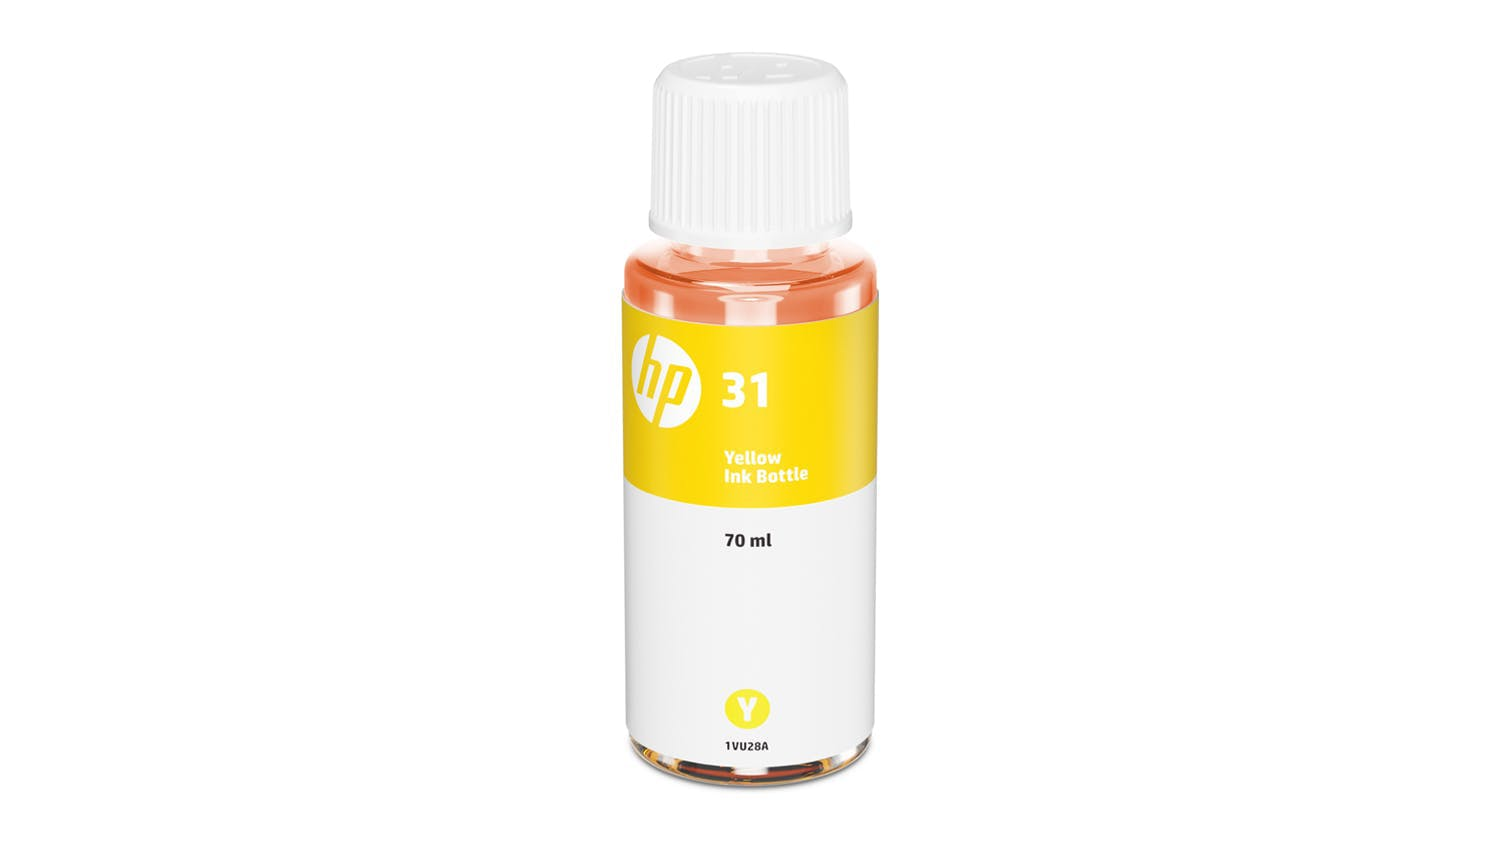 HP 31 70ml Original Ink Bottle - Yellow